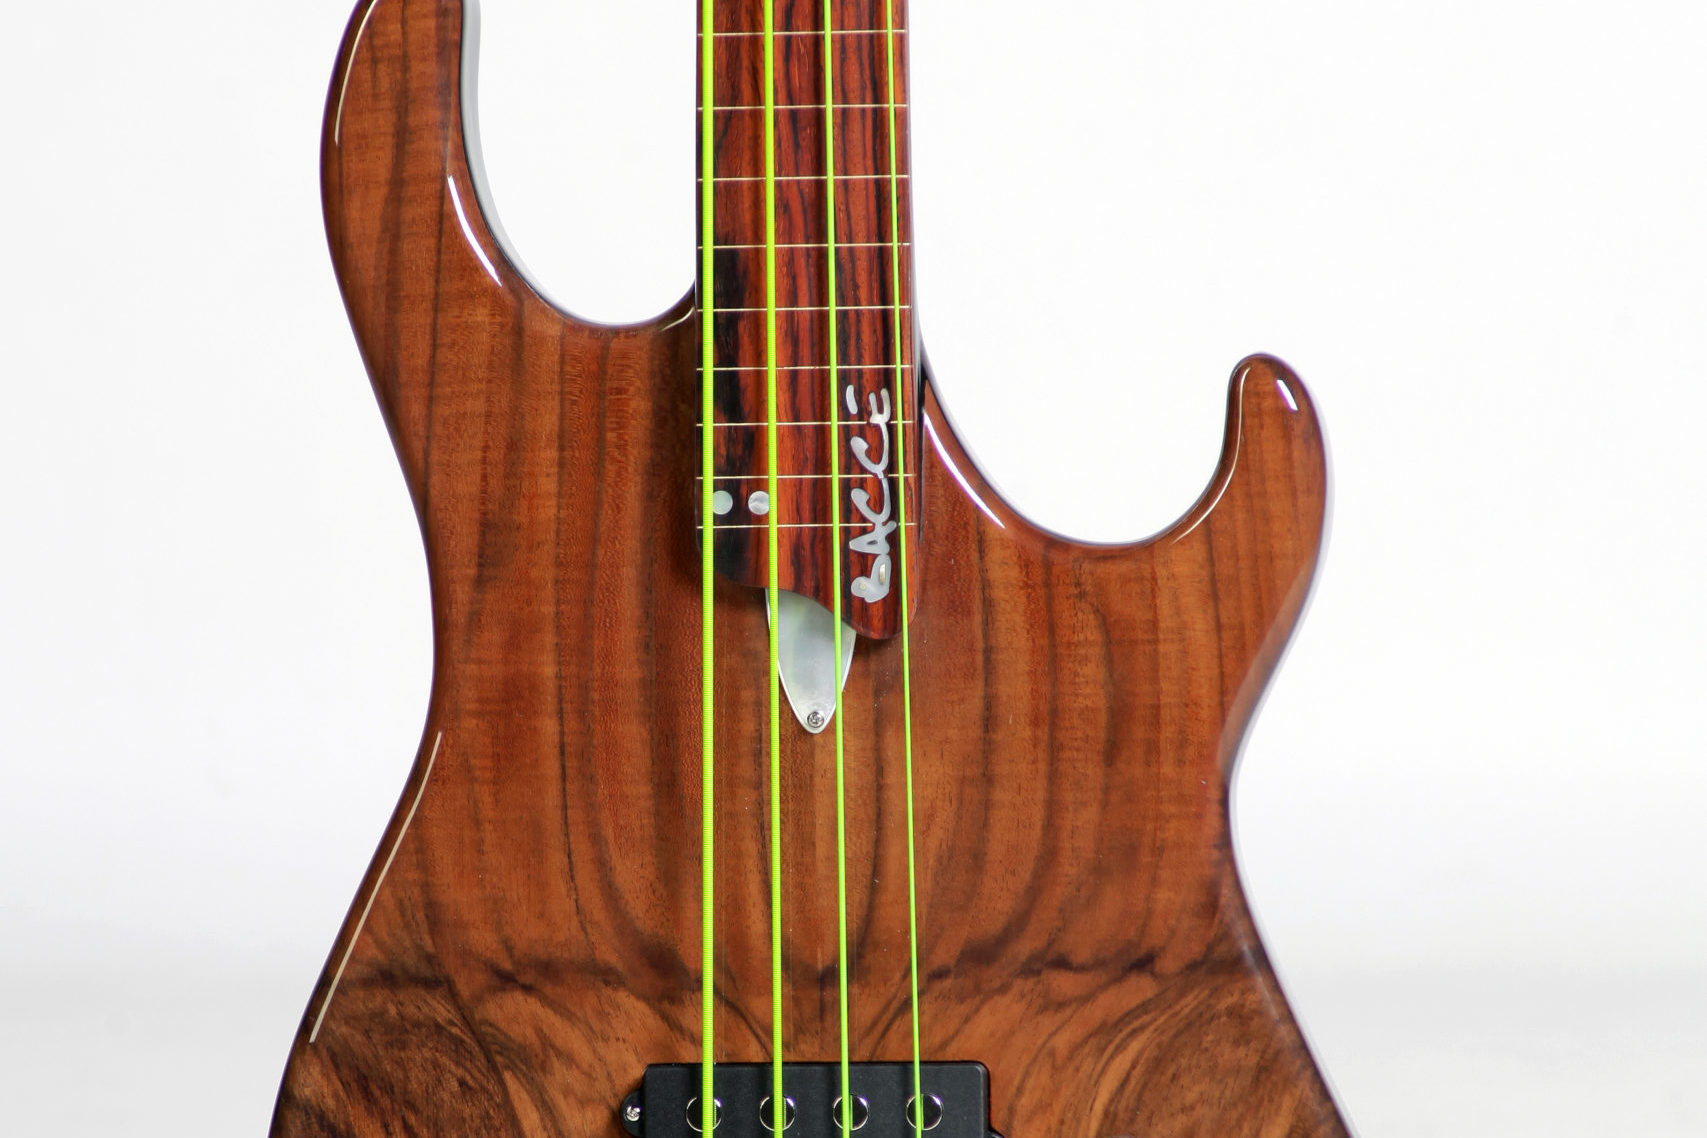 The Kore 4 Fretless